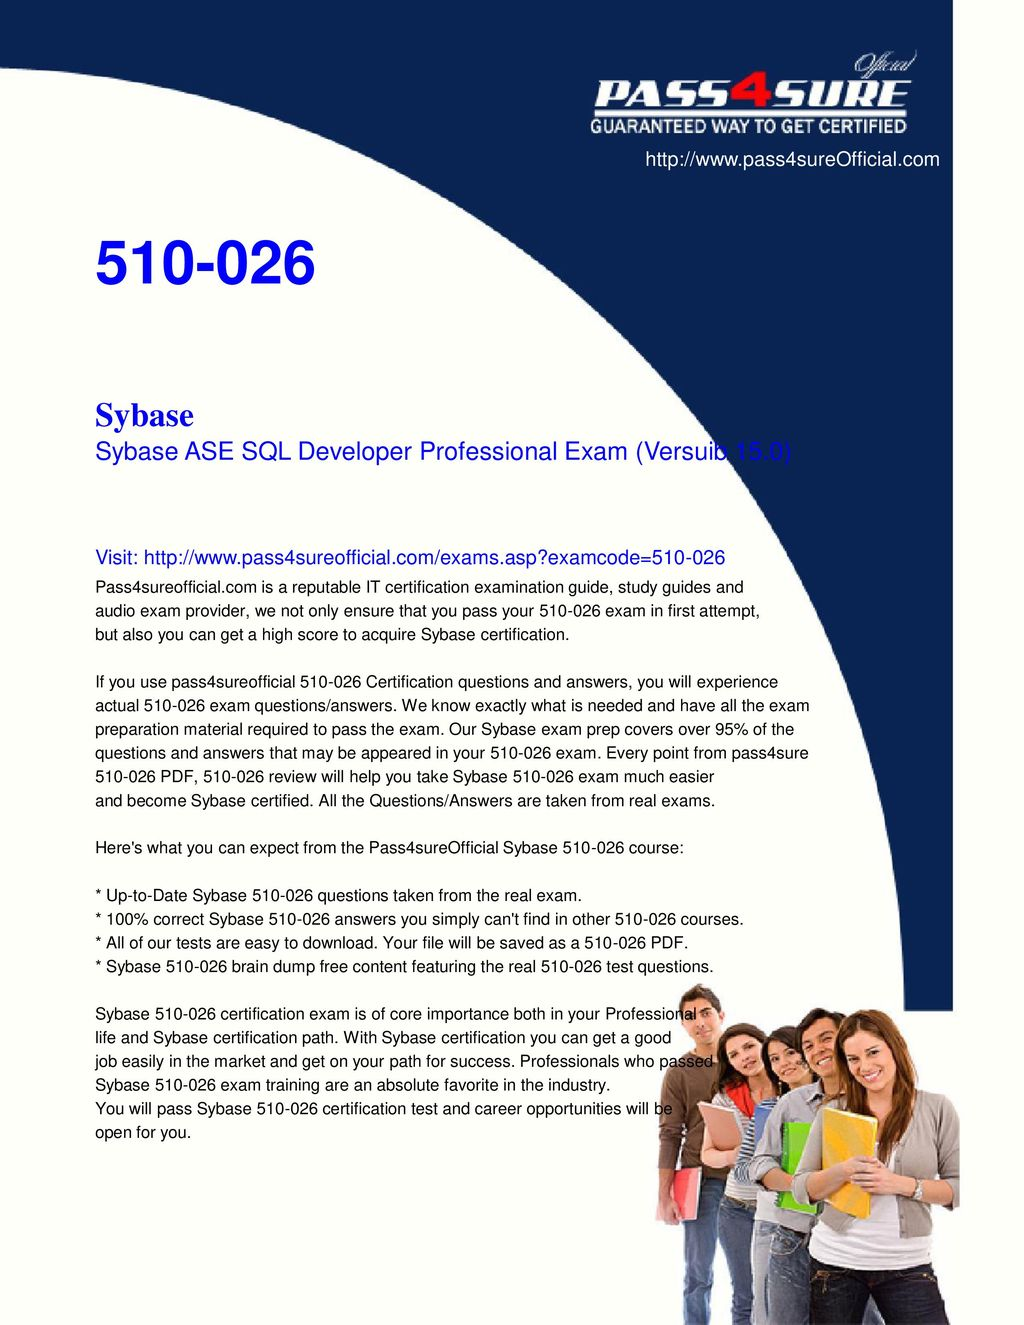 Sybase Sybase Ase Sql Developer Professional Exam Versuib 150